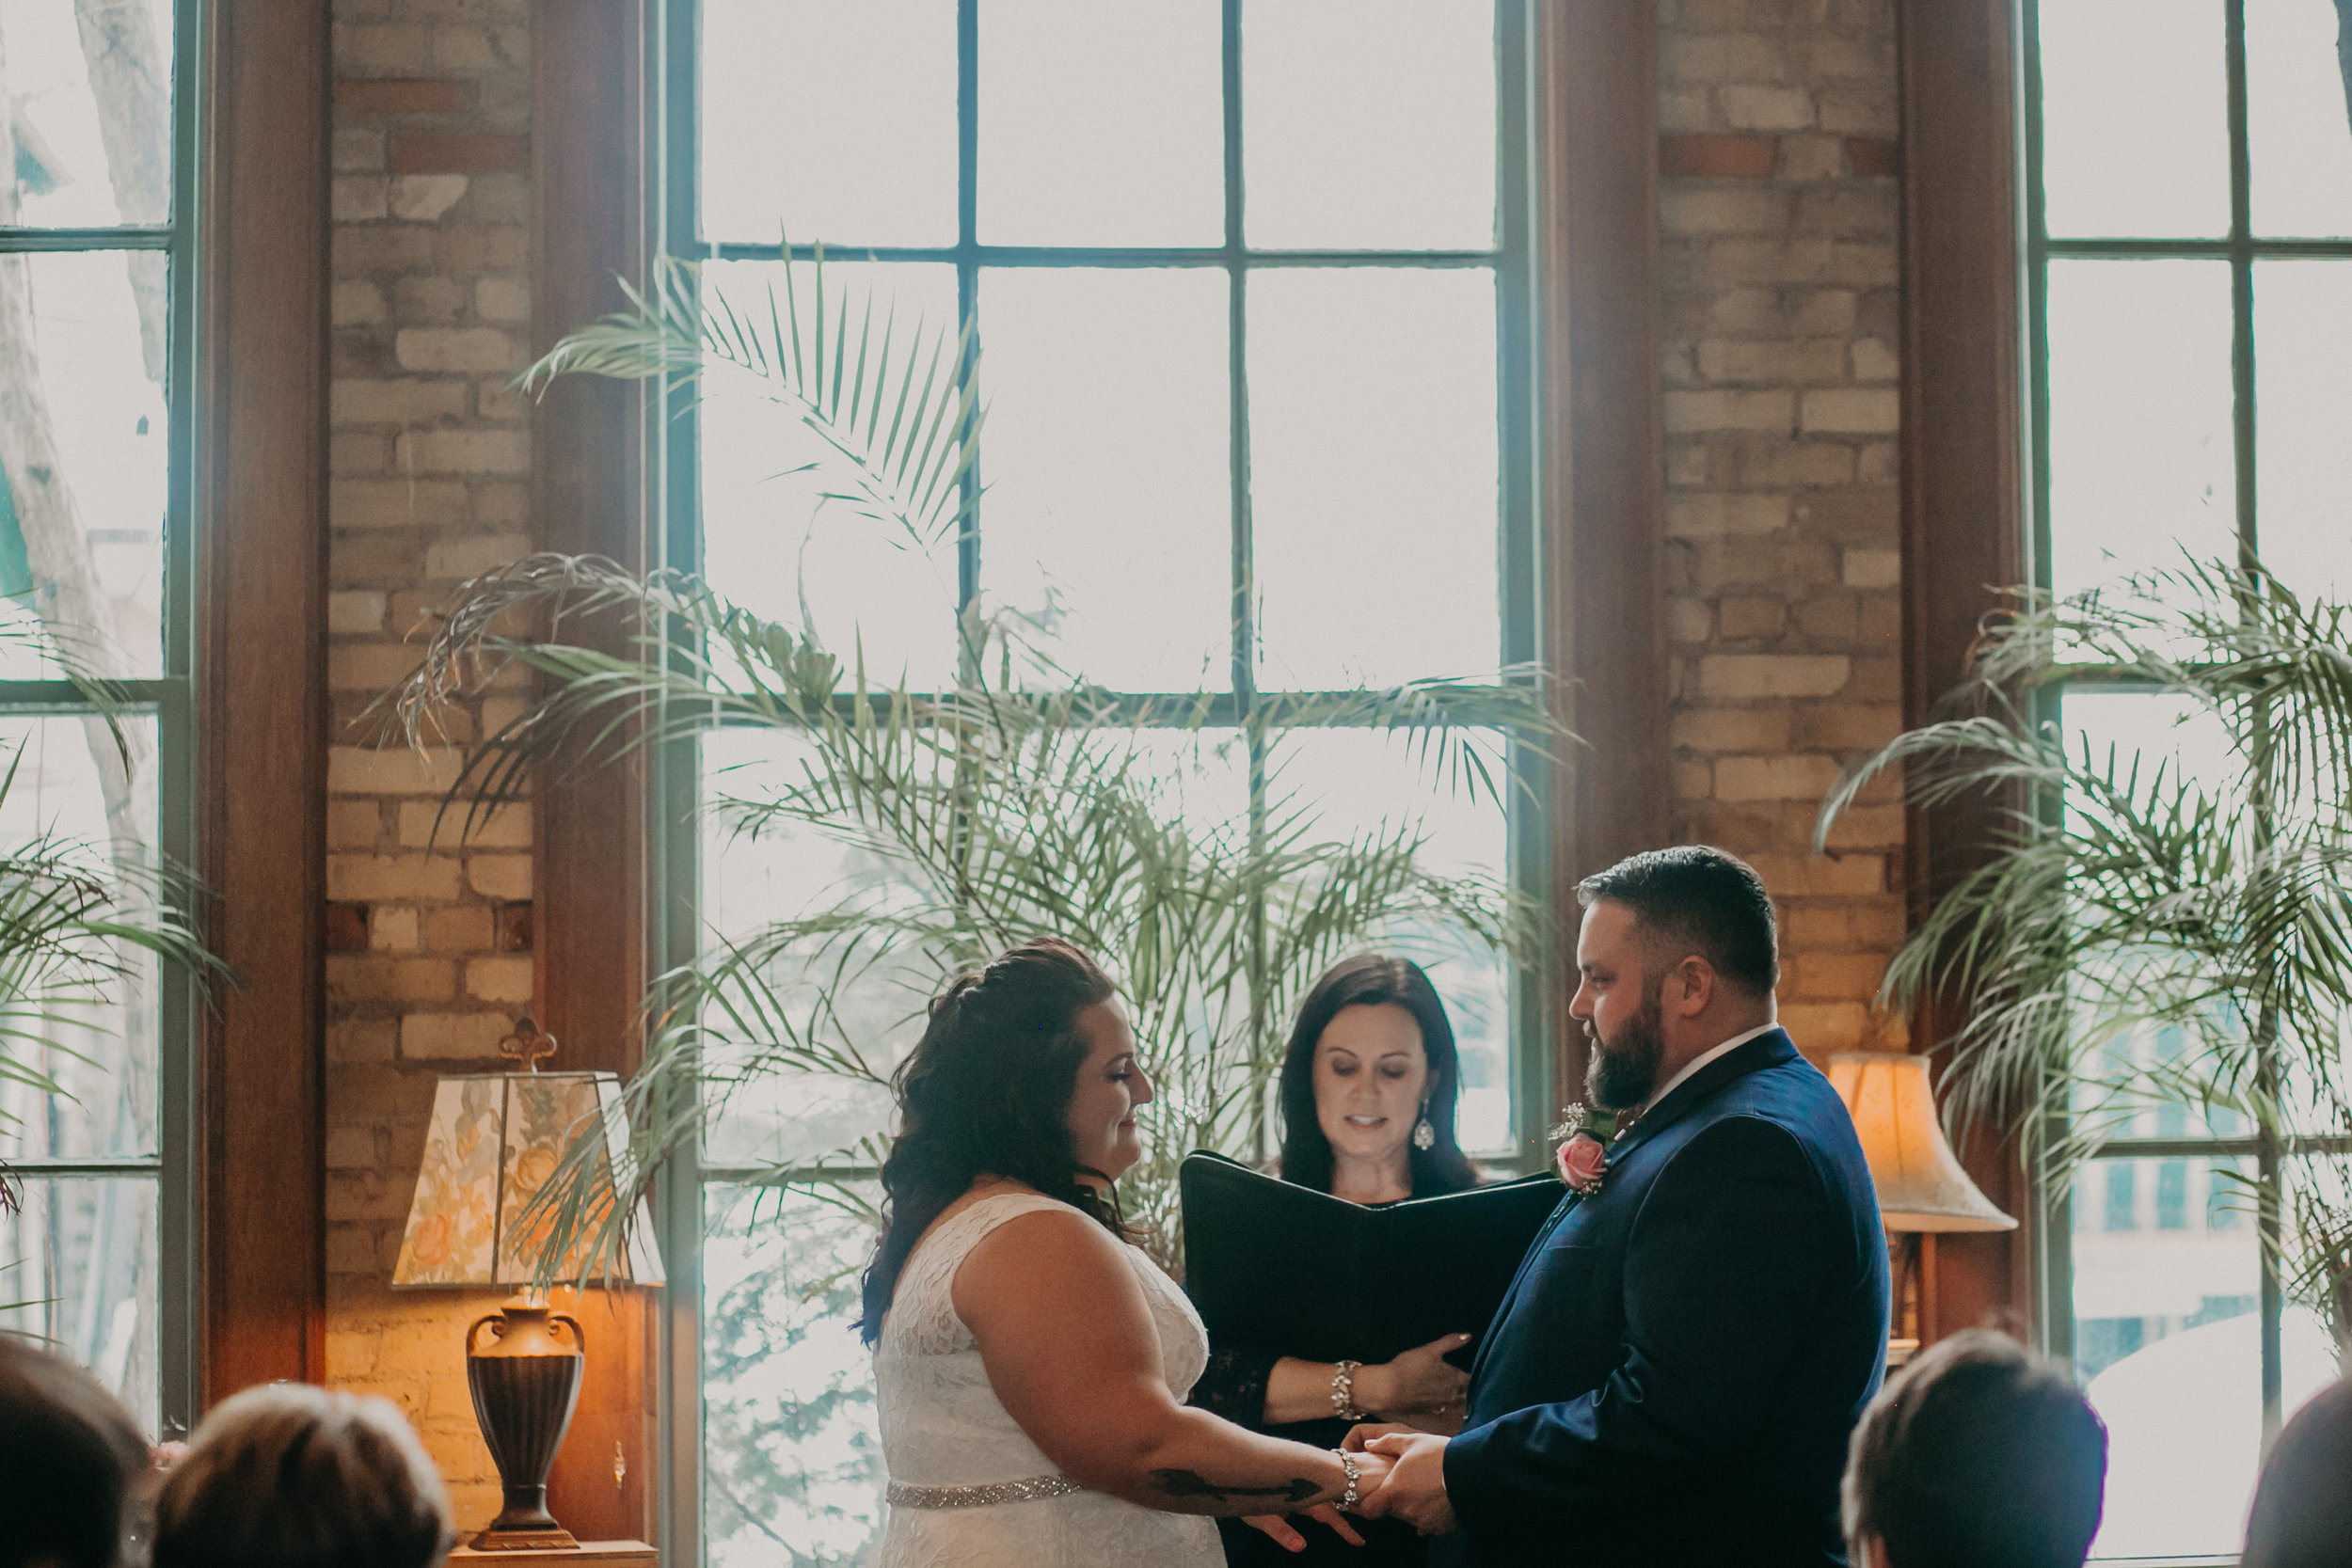 a small intimate wedding ceremony at W.A. Frost in March 2019